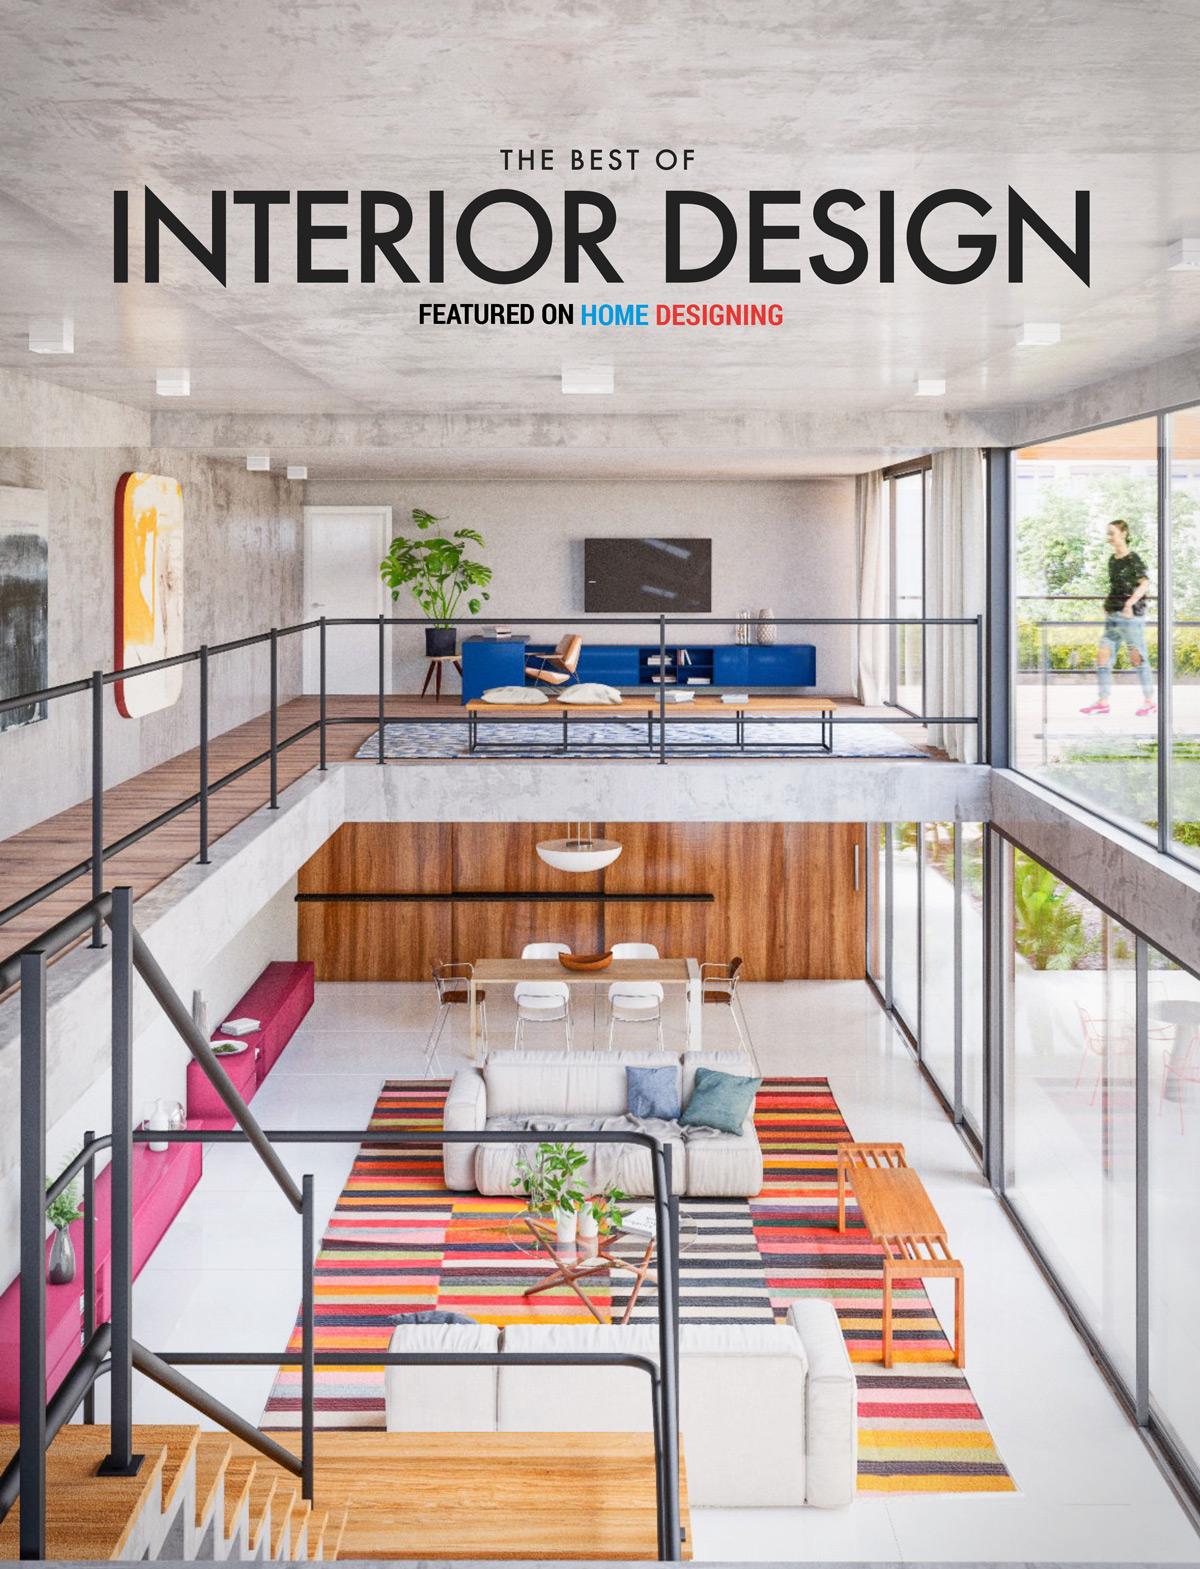 Free interior design ebook the best of interior design for Interior design styles types pdf